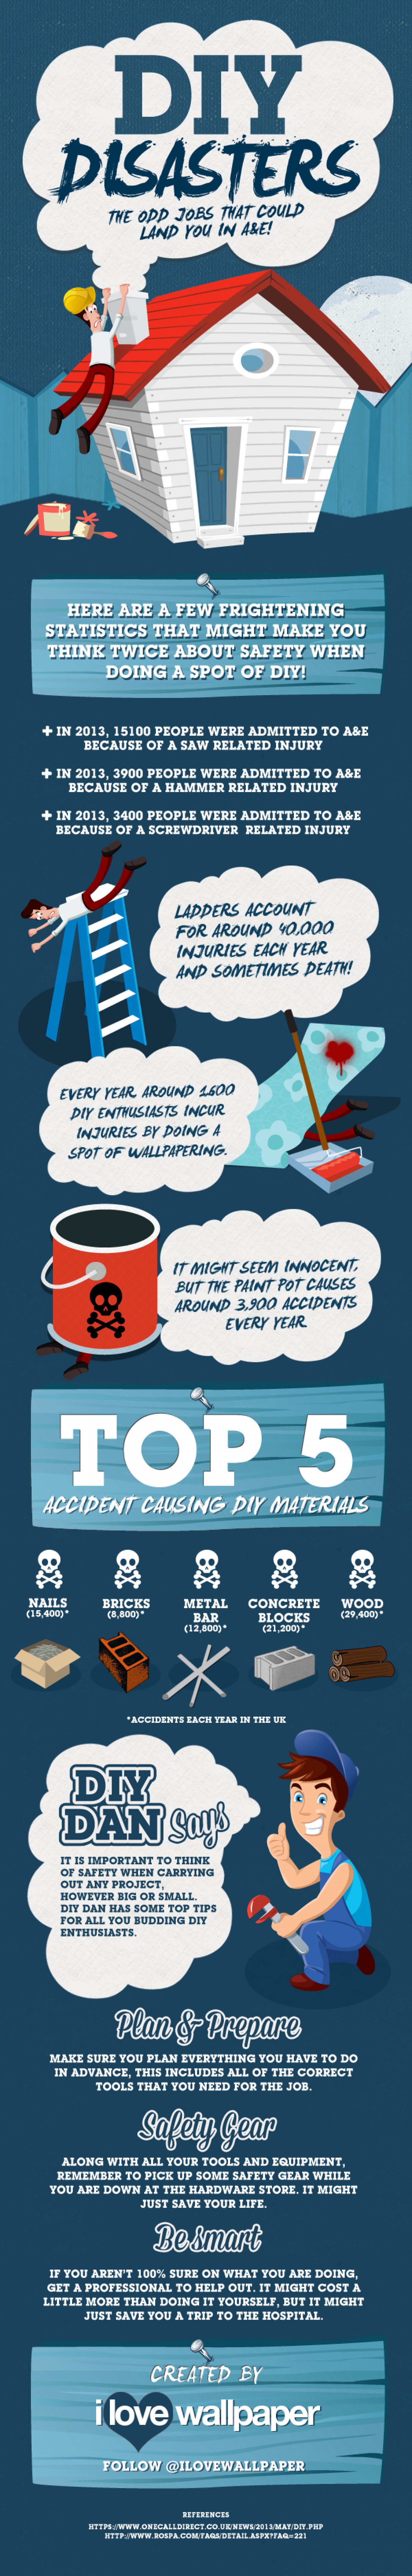 DIY Disasters! Infographic